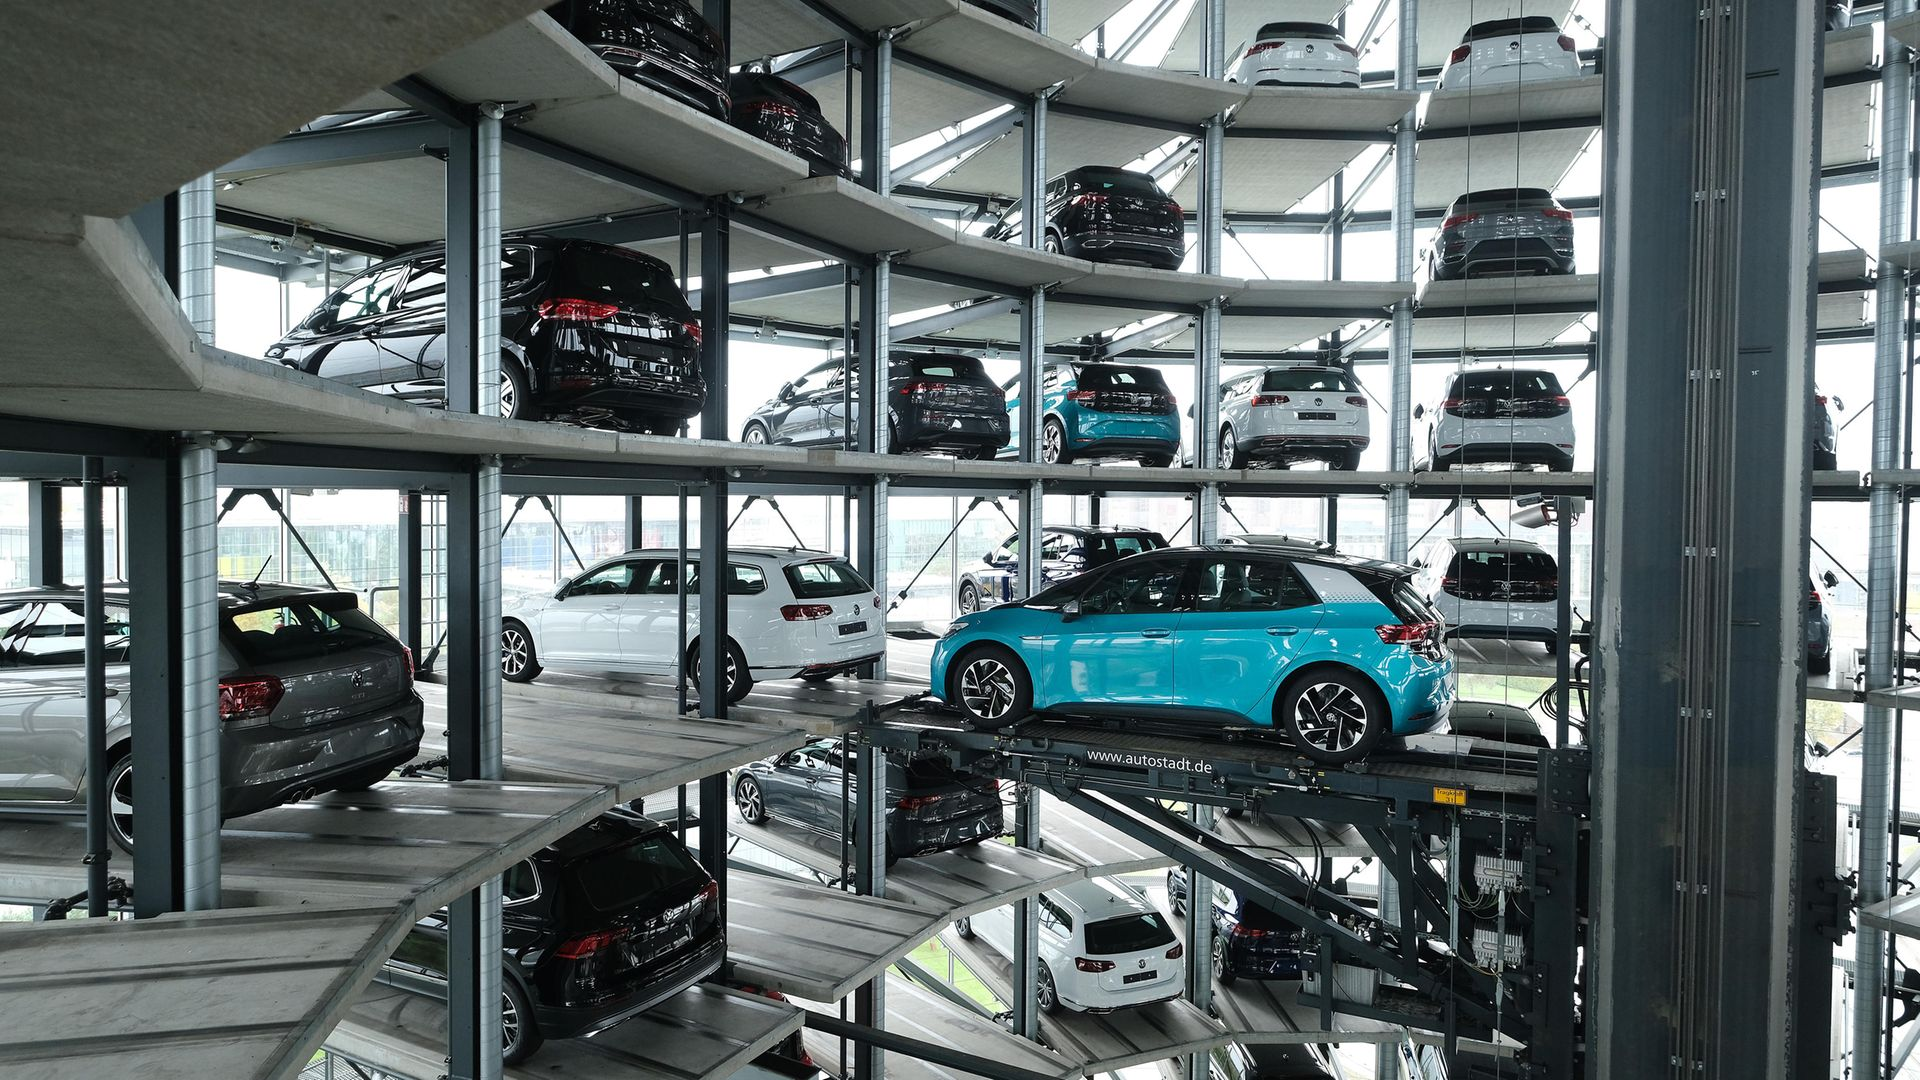 A Volkswagen ID.3 electric car stands on an elevator platform inside one of the twin towers used as storage at the Autostadt promotional facility next to the Volkswagen factory in Wolfsburg, Germany. The ID.3 and somewhat bigger ID.4 are Volkswagen's first real effort to break into the growing electric car market and are aimed for mass appeal - Credit: Getty Images